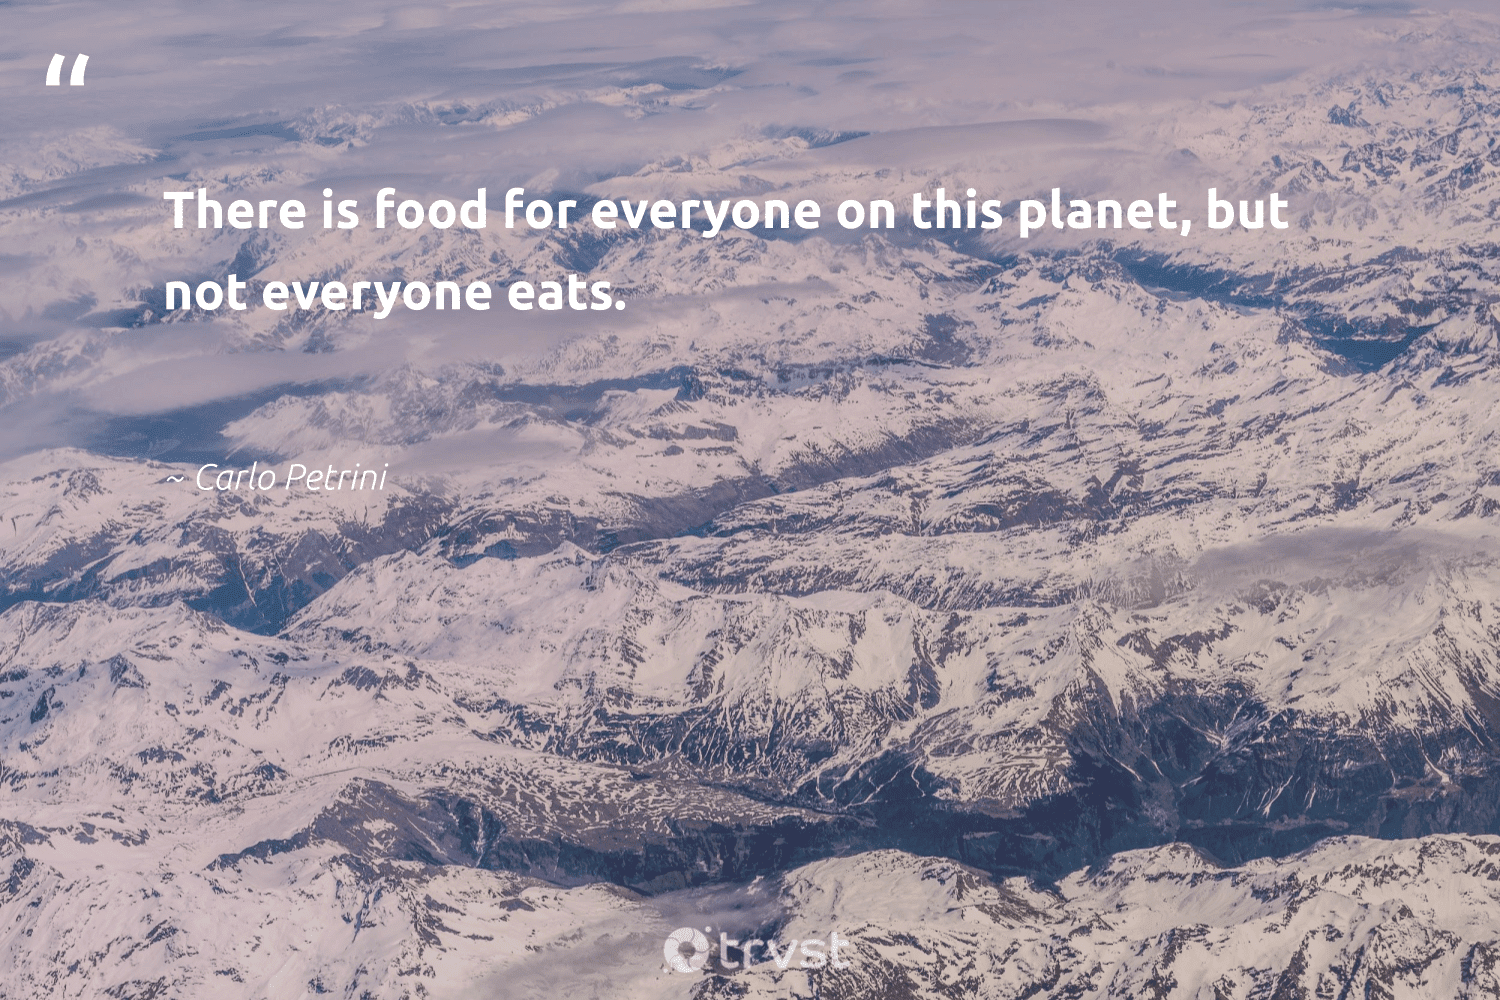 """""""There is food for everyone on this planet, but not everyone eats. """"  - Carlo Petrini #trvst #quotes #planet #food #environment #saveourplanet #savetheplanet #socialimpact #conservation #dogood #sustainable #dotherightthing"""